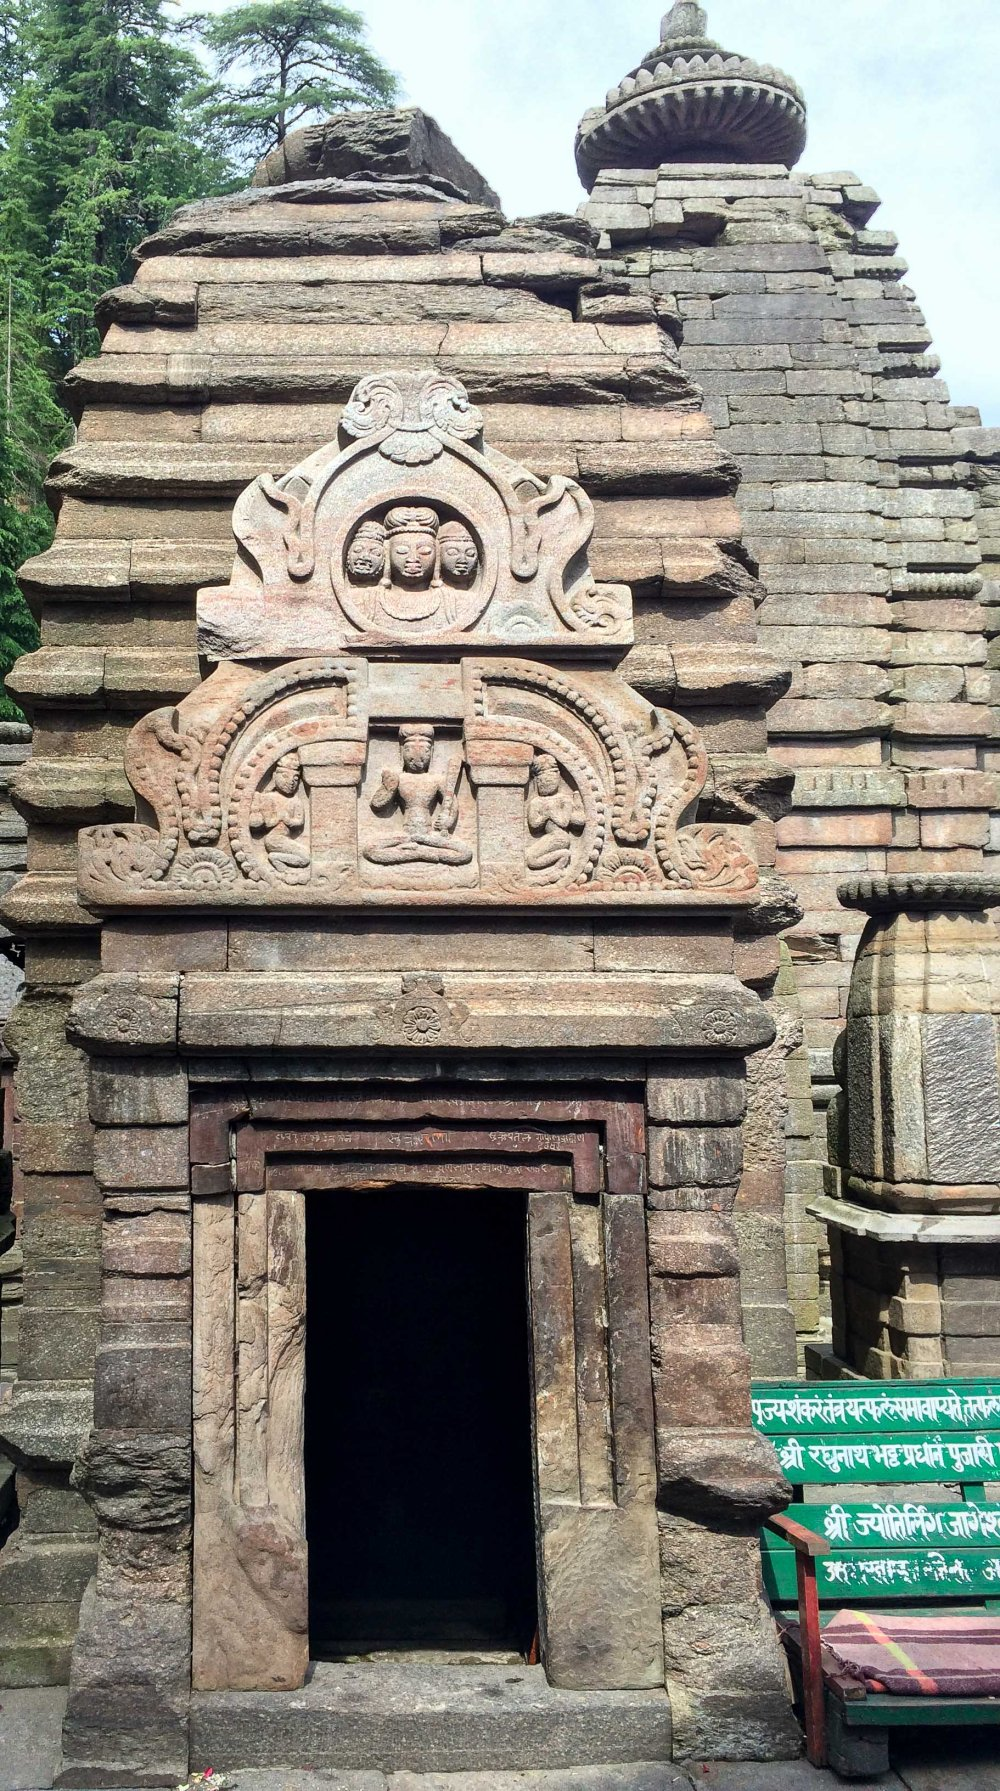 Carving on a temple in Jageshwar